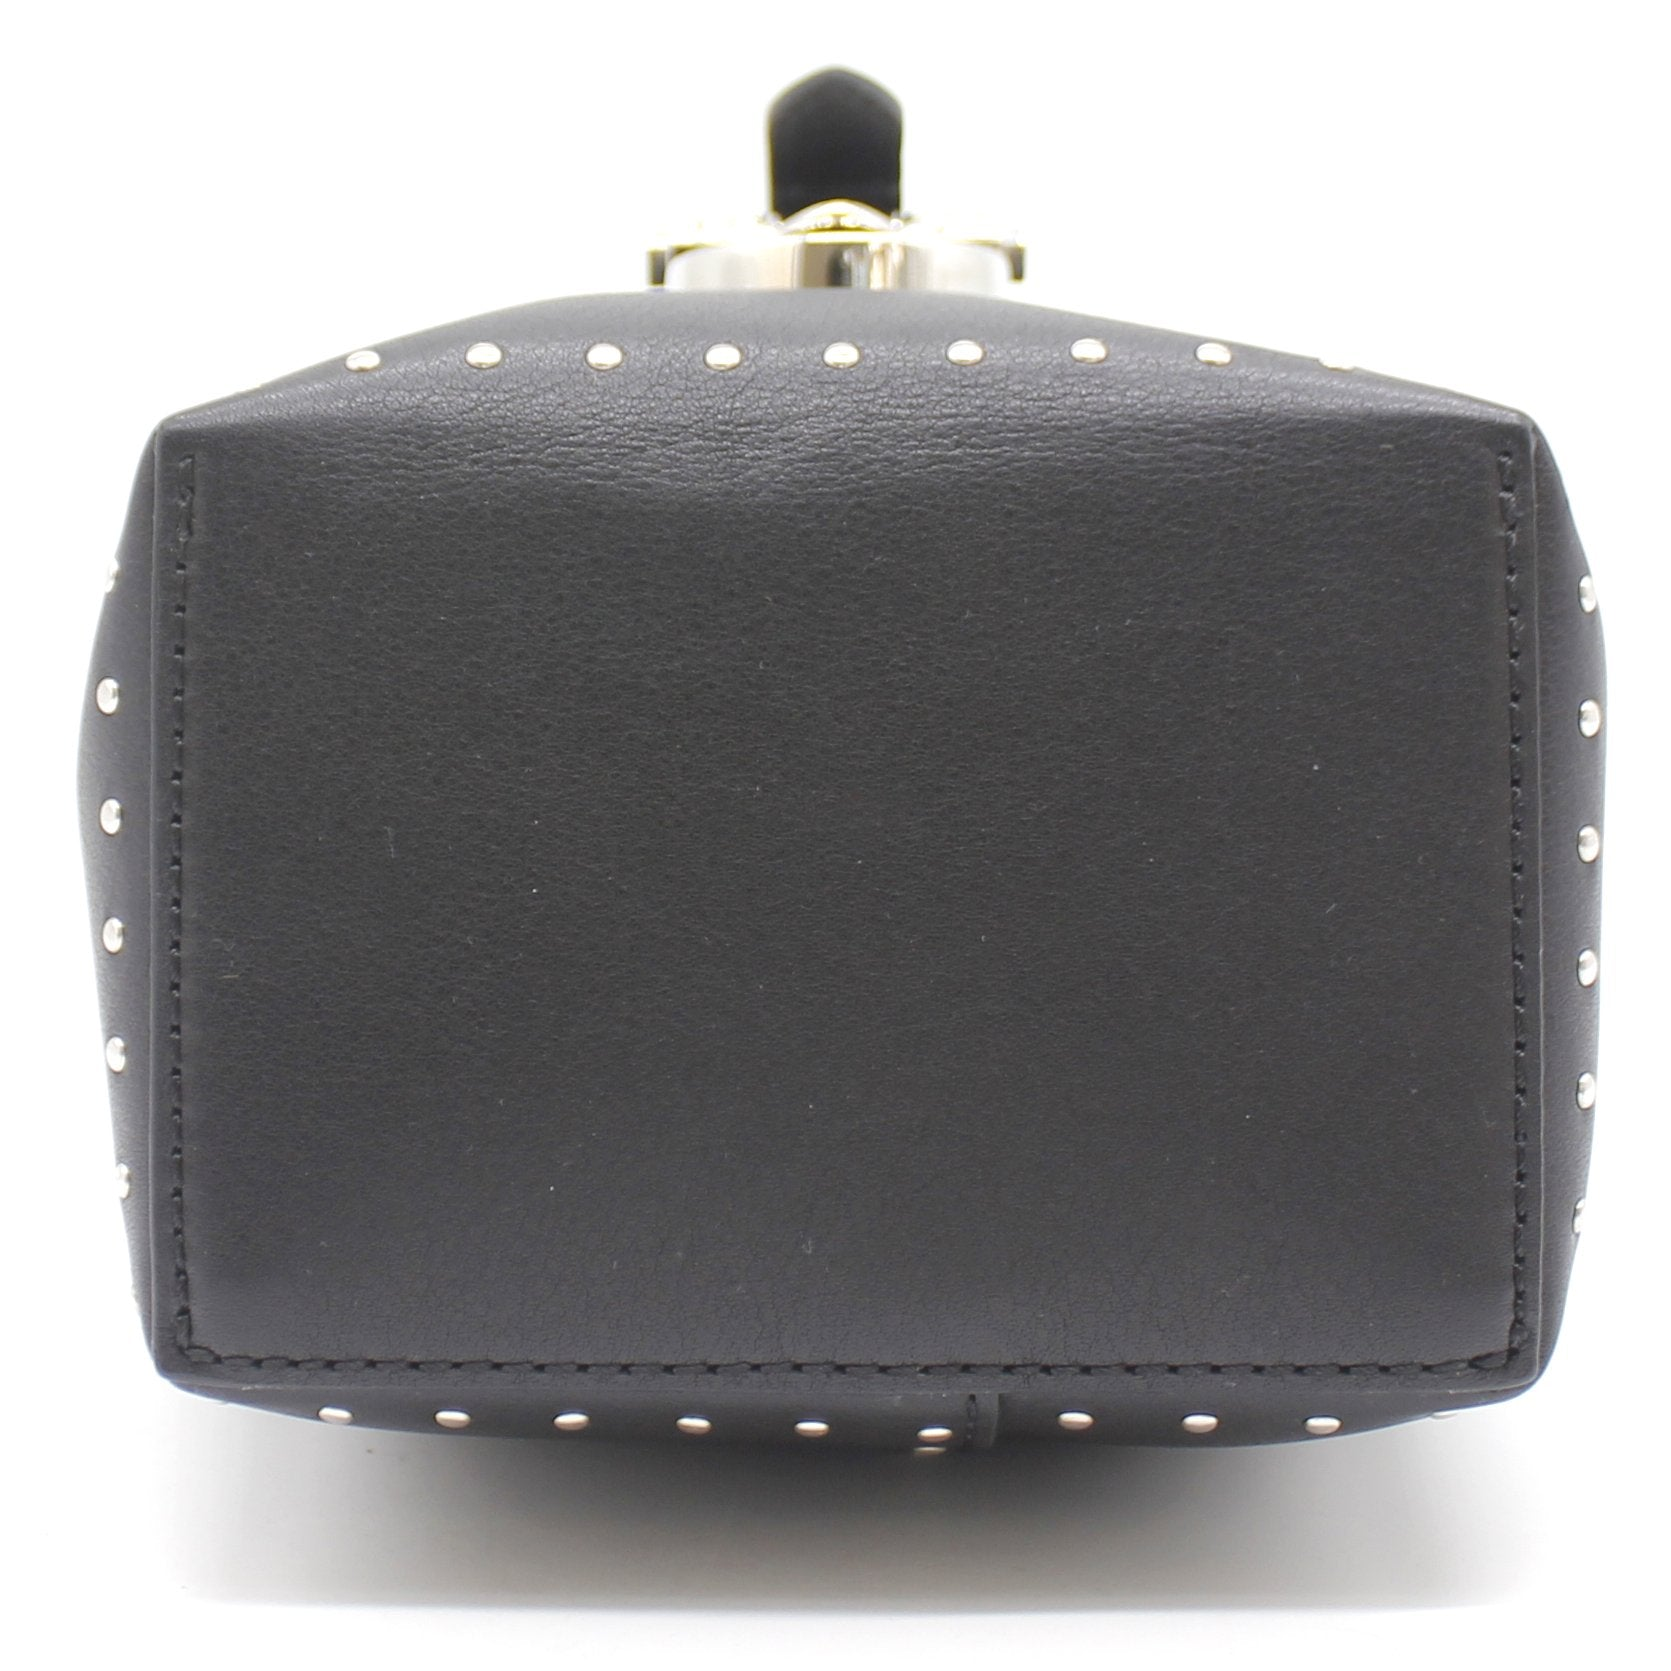 Monogram Camera Box Bag